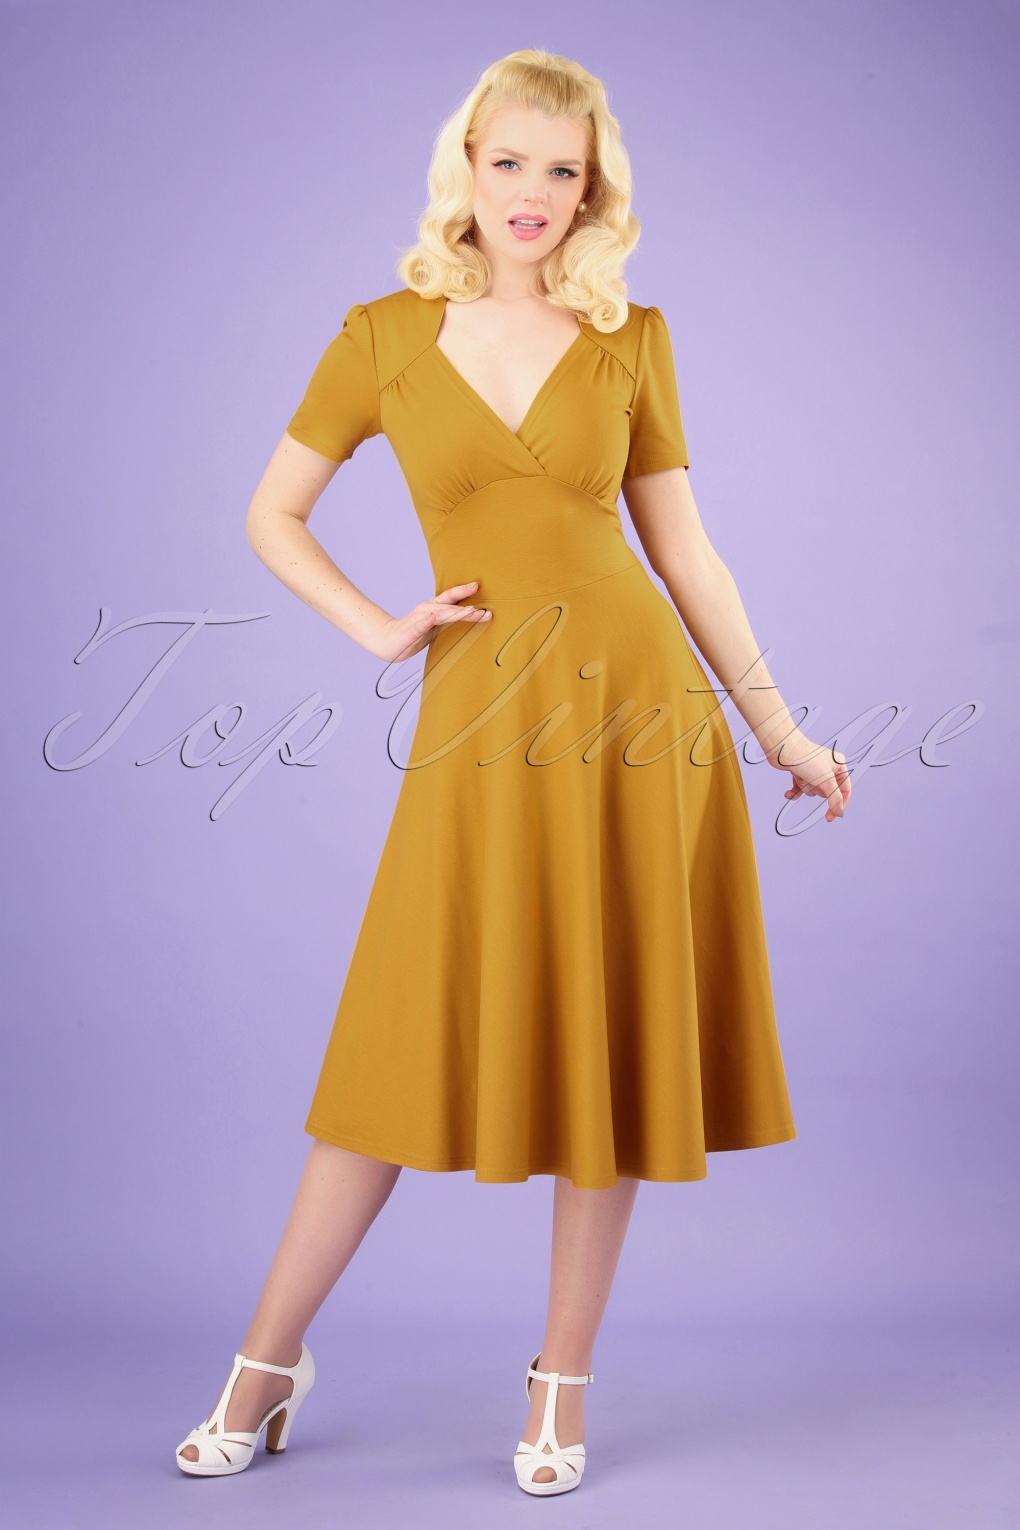 Swing Dance Clothing You Can Dance In 40s Vivienne Hollywood Circle Dress in Mustard £92.78 AT vintagedancer.com